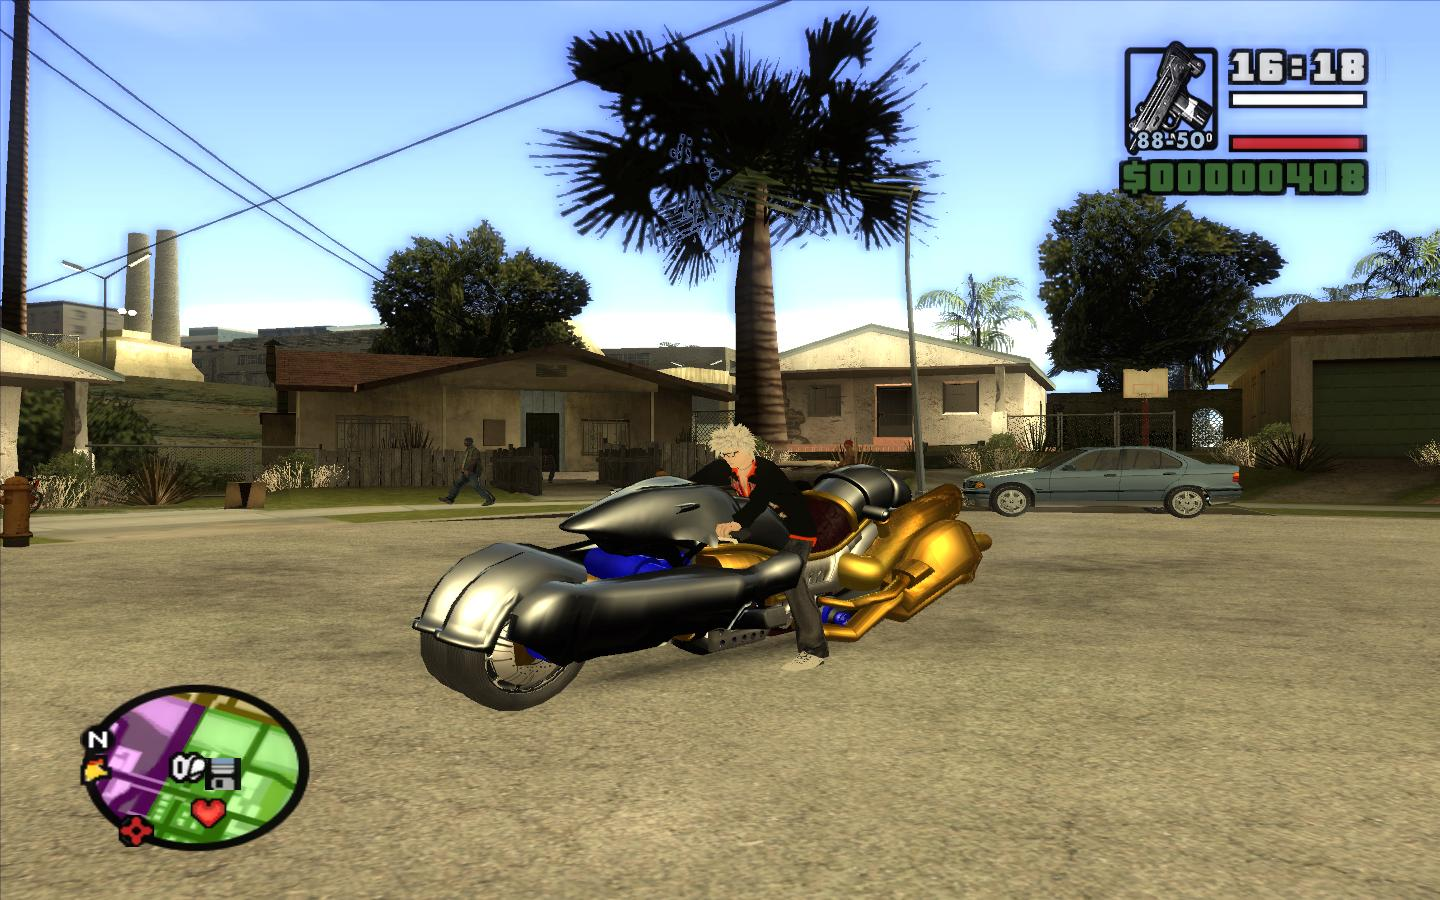 Gta San Andreas Cheats For Bikes And Cars images